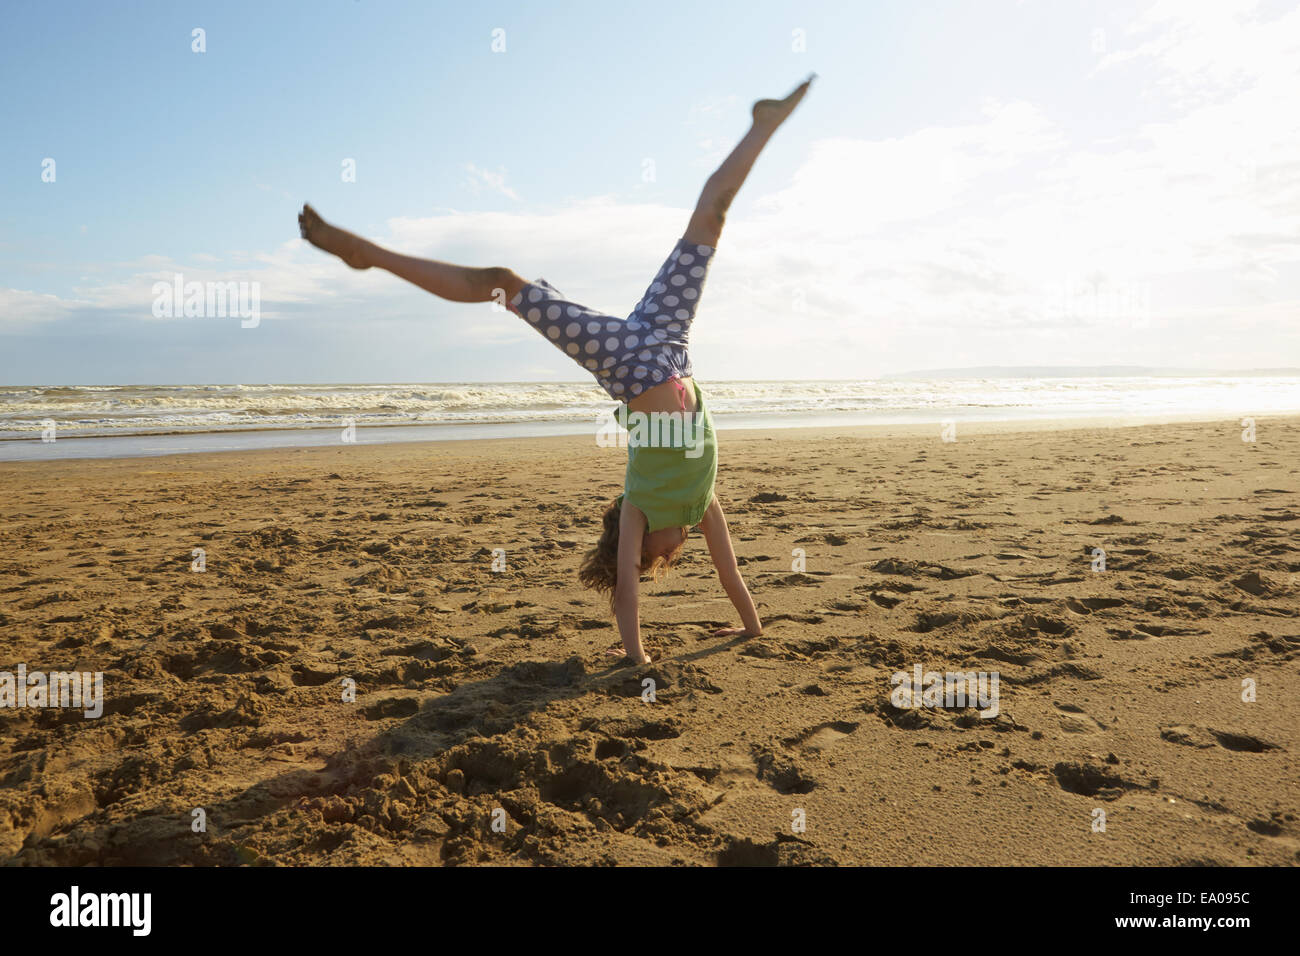 Girl doing handstand on beach, Camber Sands, Kent, UK Photo Stock